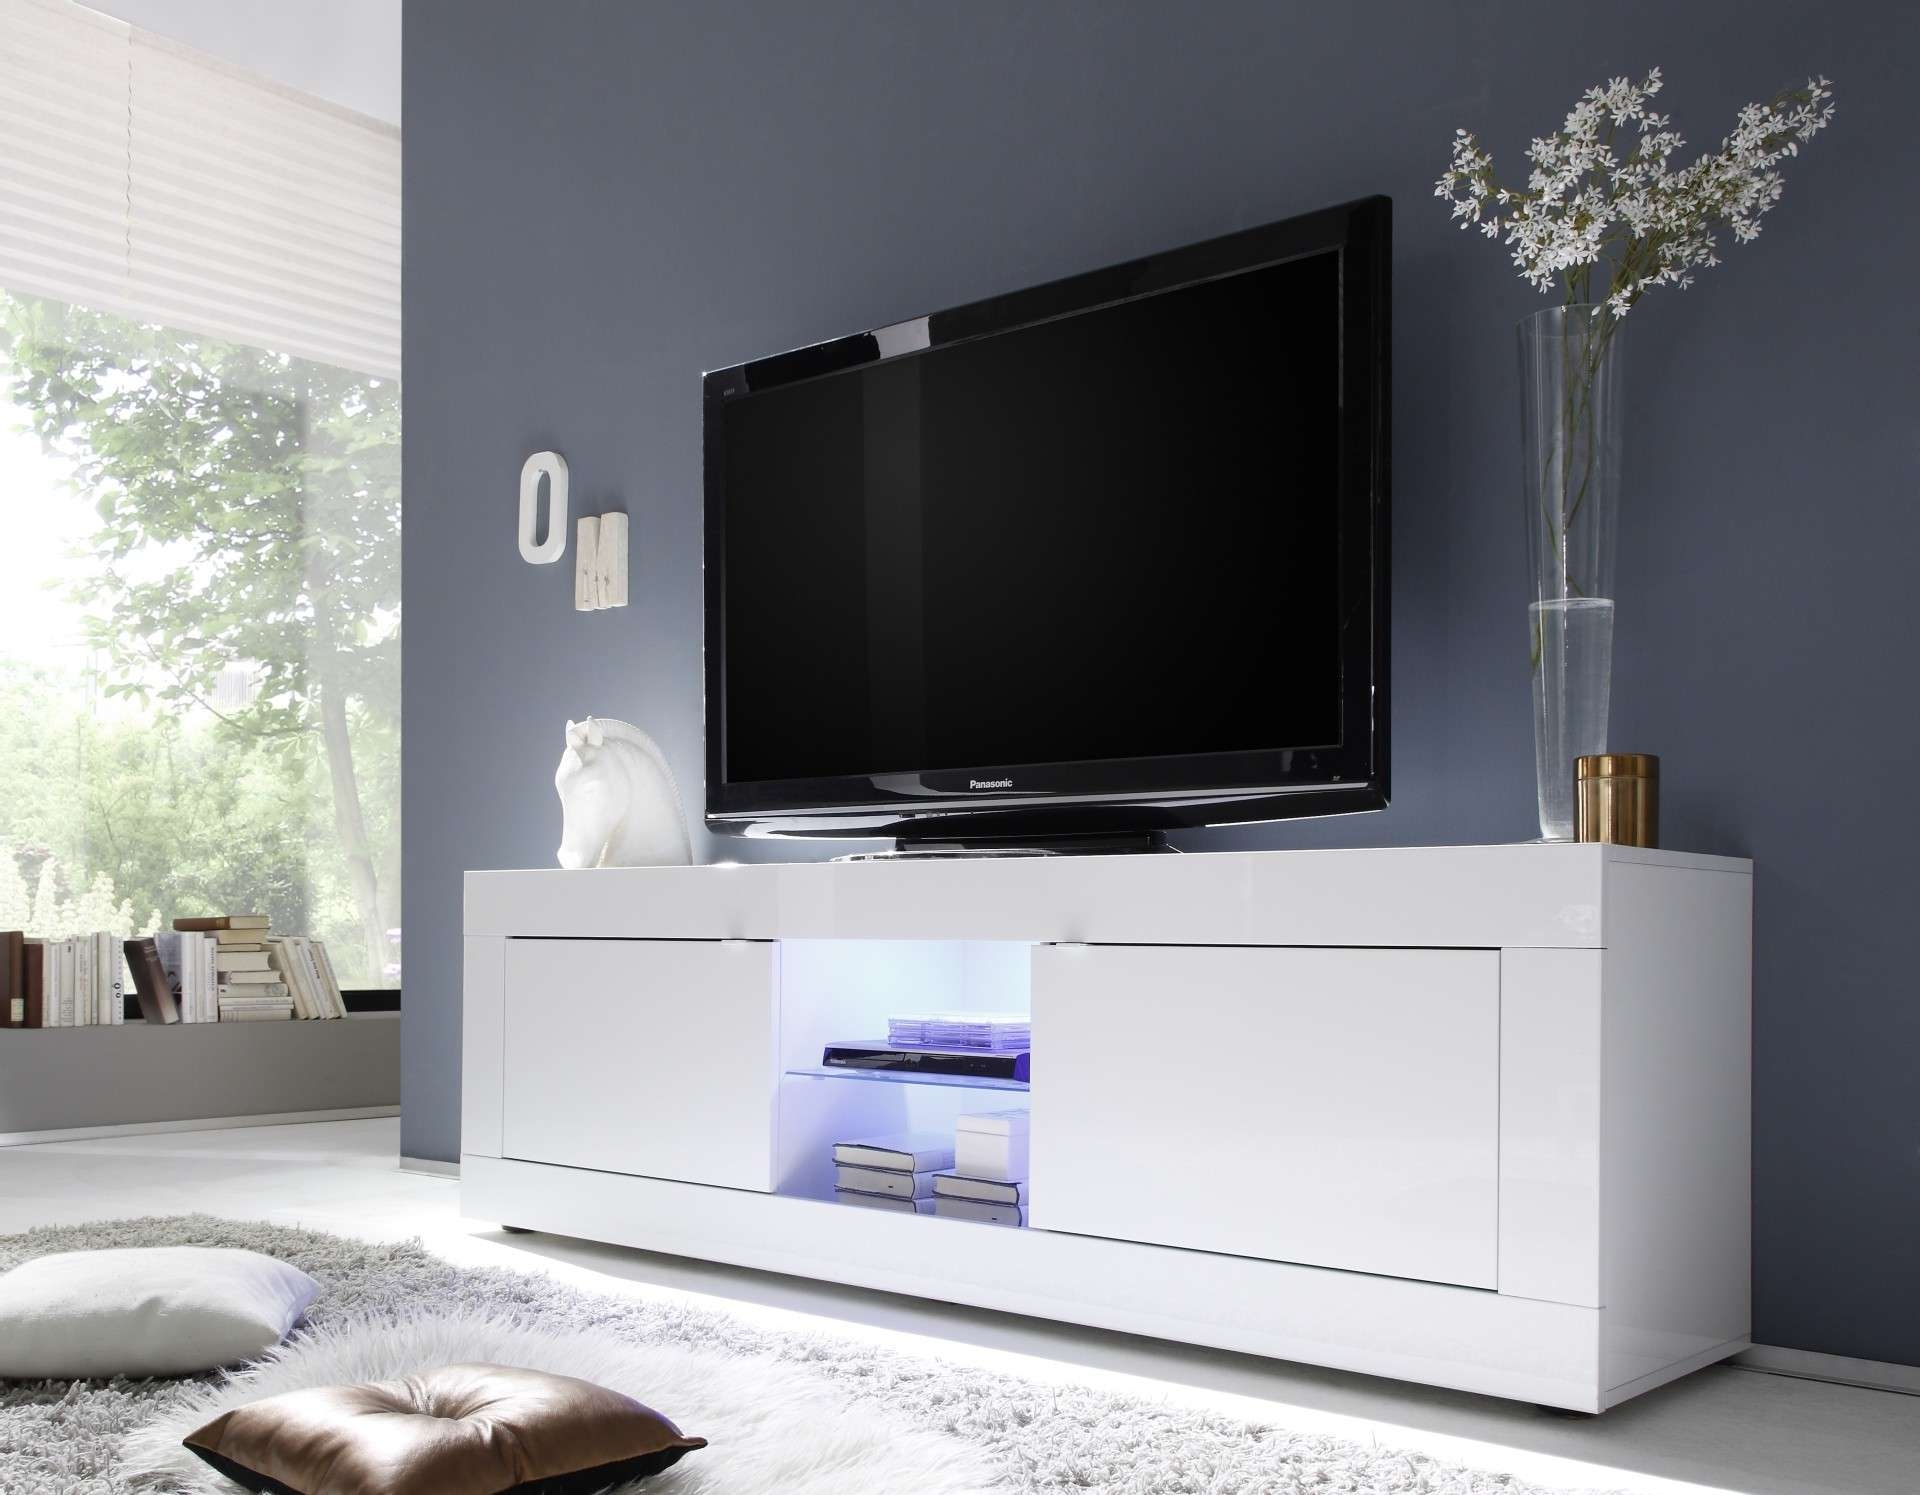 Avanti Ii Gloss Tv Stand With Rgb Lights – Tv Stands – Sena Home In Cream High Gloss Tv Cabinets (View 2 of 20)